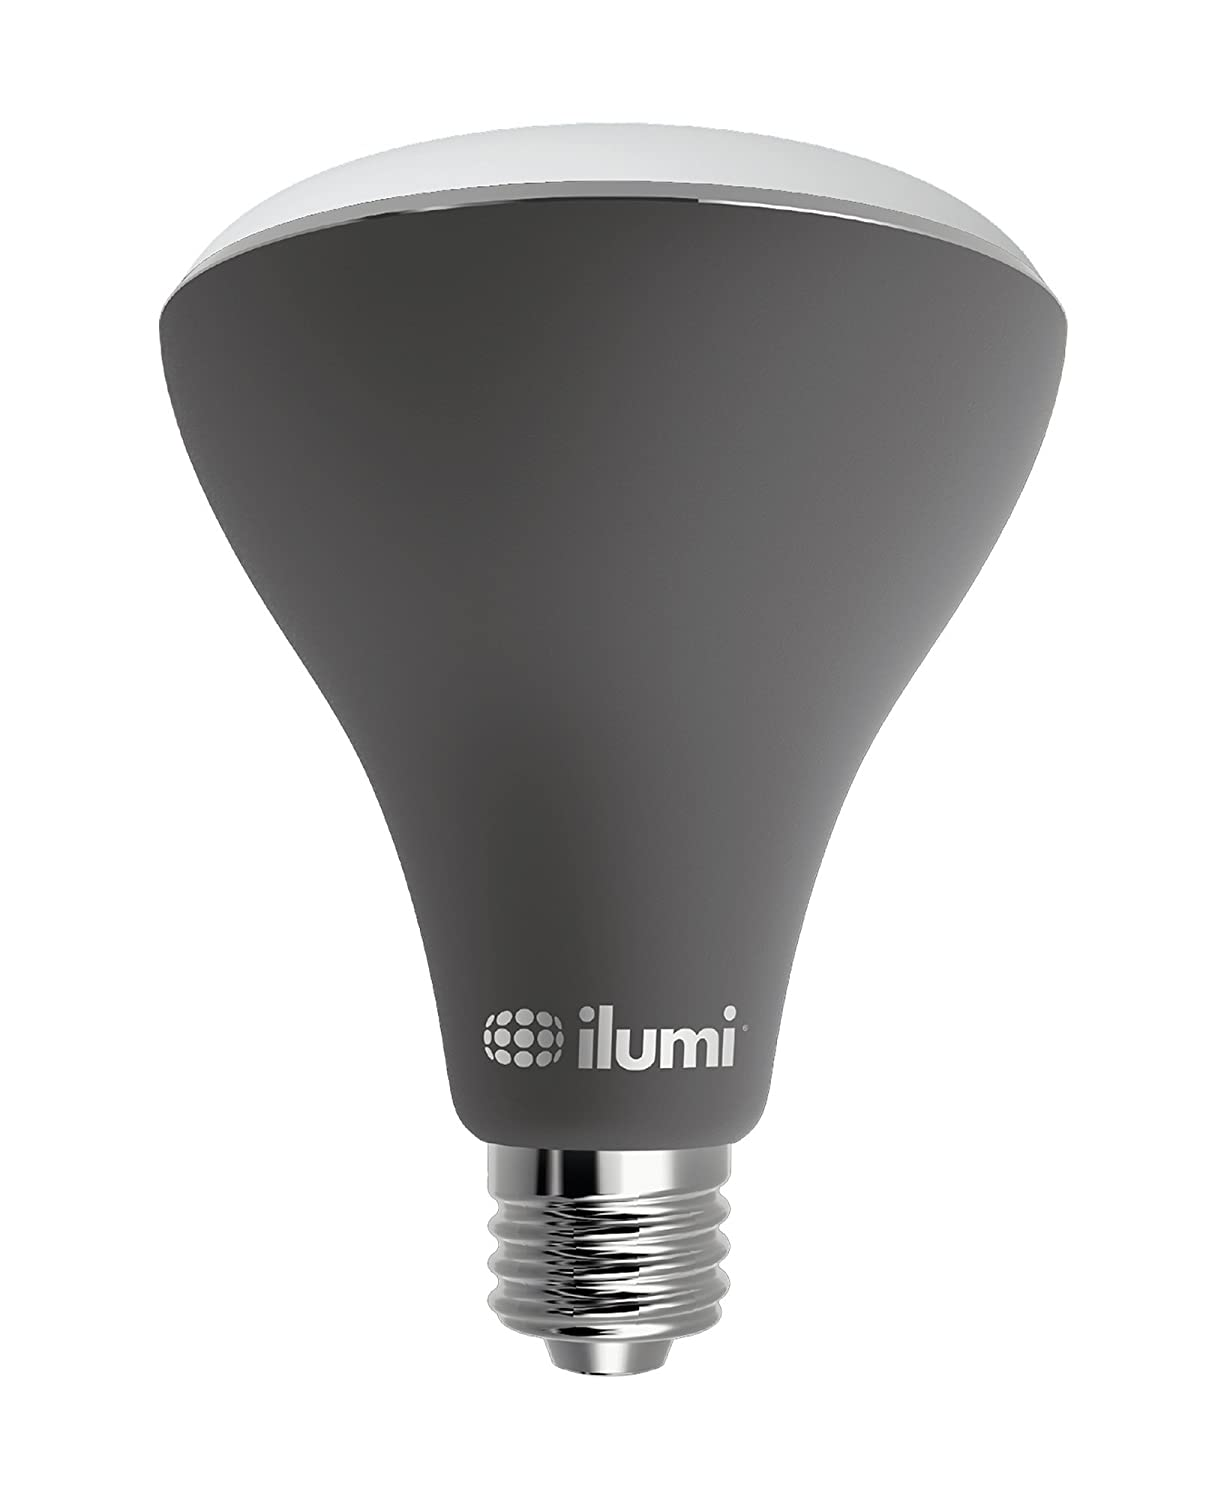 Ilumi outdoor bluetooth smart led br30 flood light bulb 2nd ilumi outdoor bluetooth smart led br30 flood light bulb 2nd generation smartphone controlled dimmable multicolored color changing light works with mozeypictures